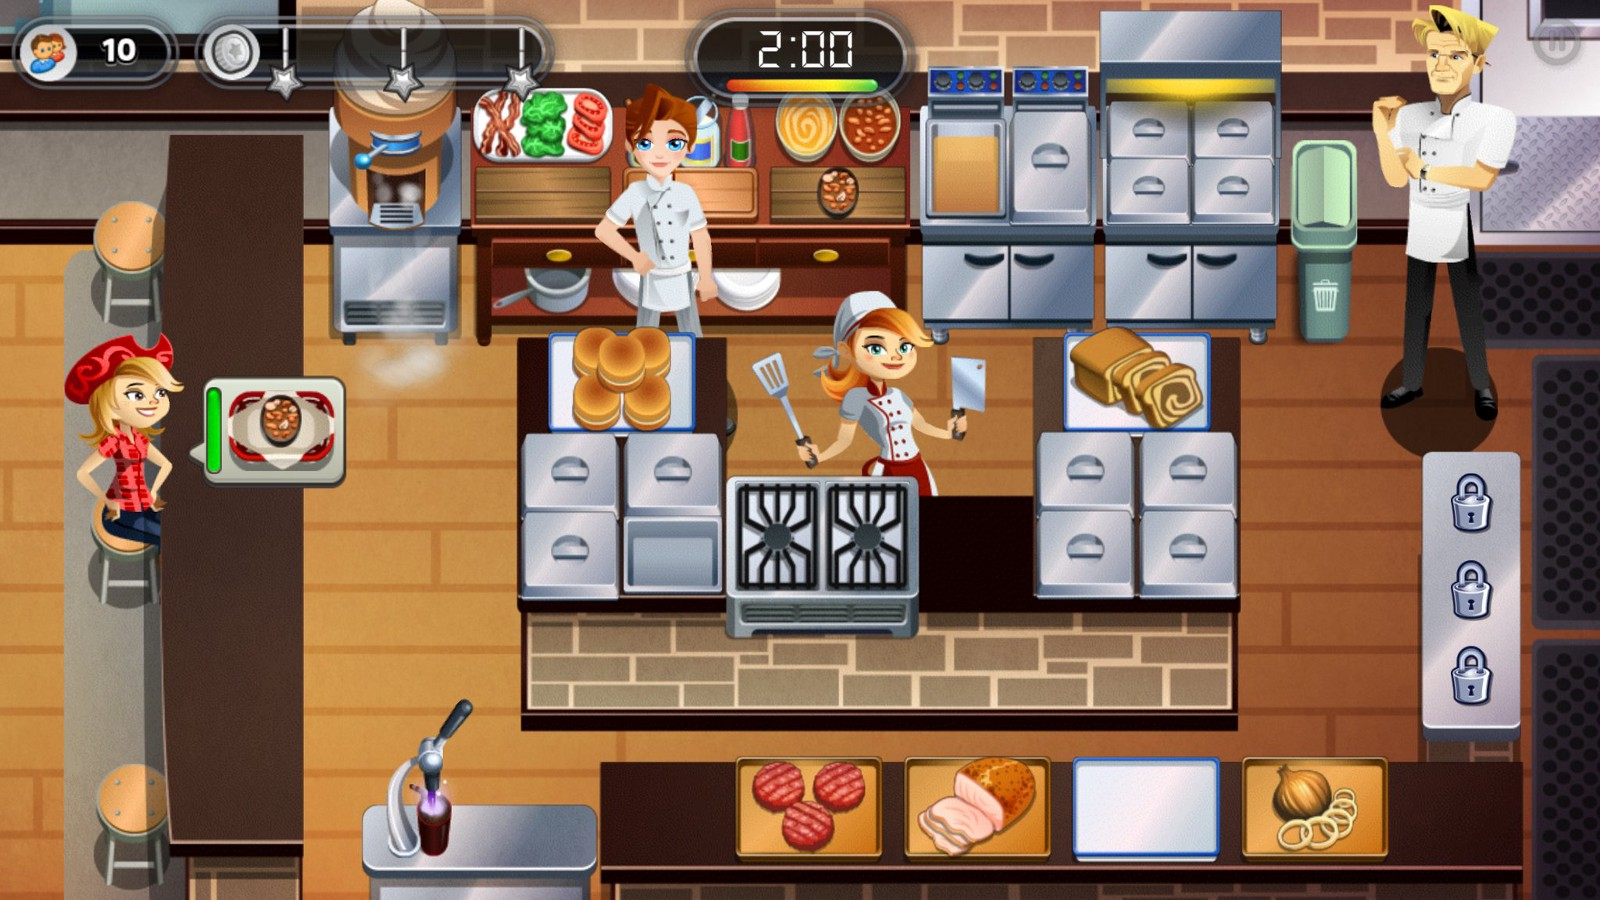 Gordon Ramsay Dash gameplay, Glu Mobile (2016)